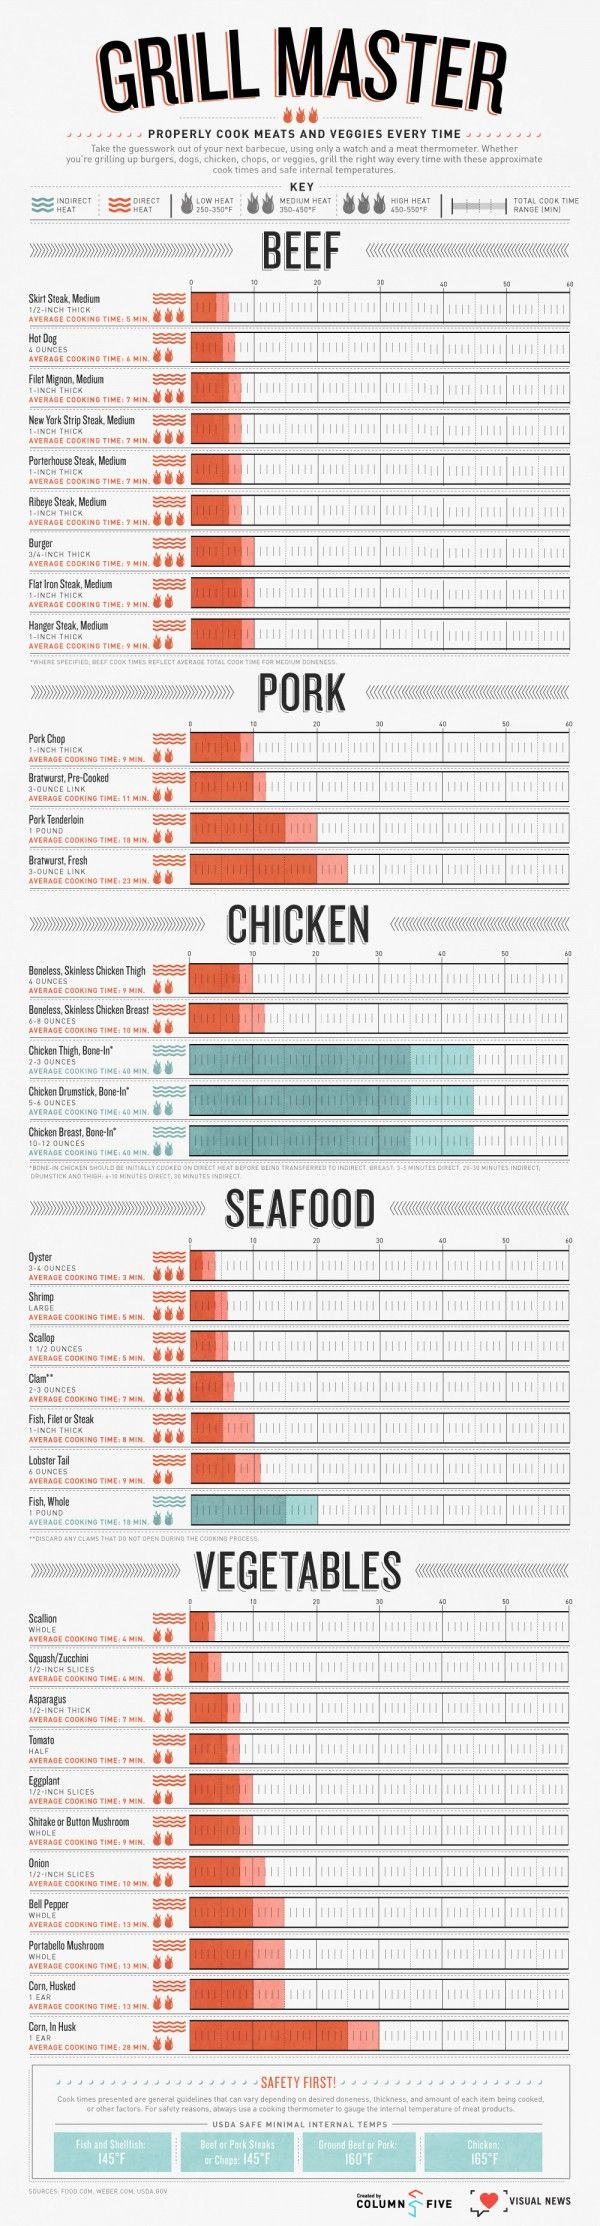 Grill Master: A Foolproof Guide to Grilling #infographic